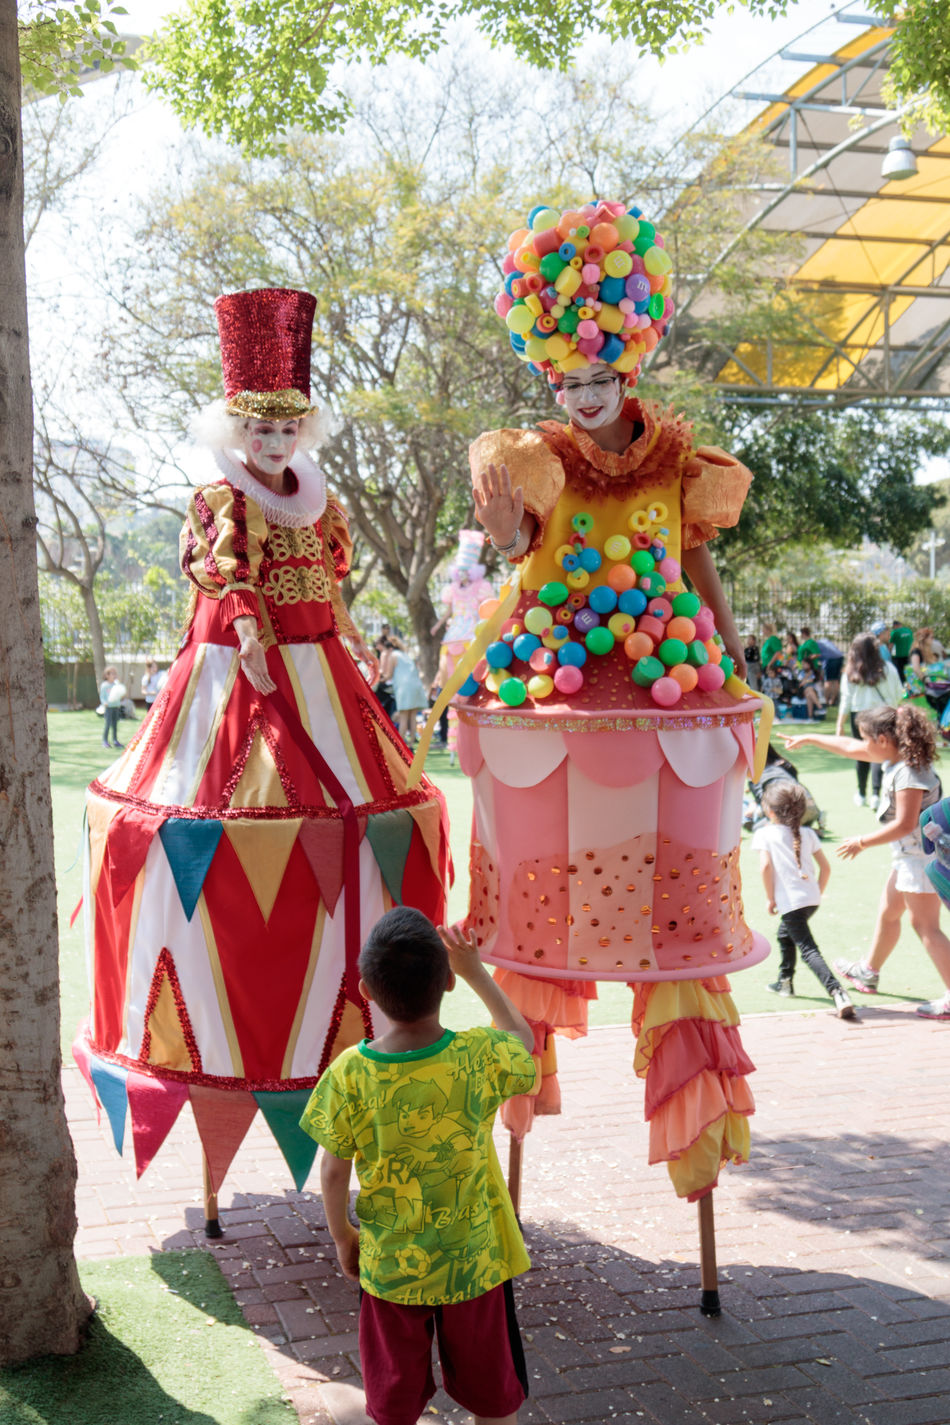 Tel Aviv, Israel, April 16, 2016 : Clowns on stilts greet a small visitor to the attractions park in Tel Aviv, Israel Amusement  Attraction Beautiful Carnival Clown Costume Day Entertainment Event Face Festival Fun Funny Happiness Happy Holiday Joy Light Outdoors Park People Performer  Romantic Smile Stilt